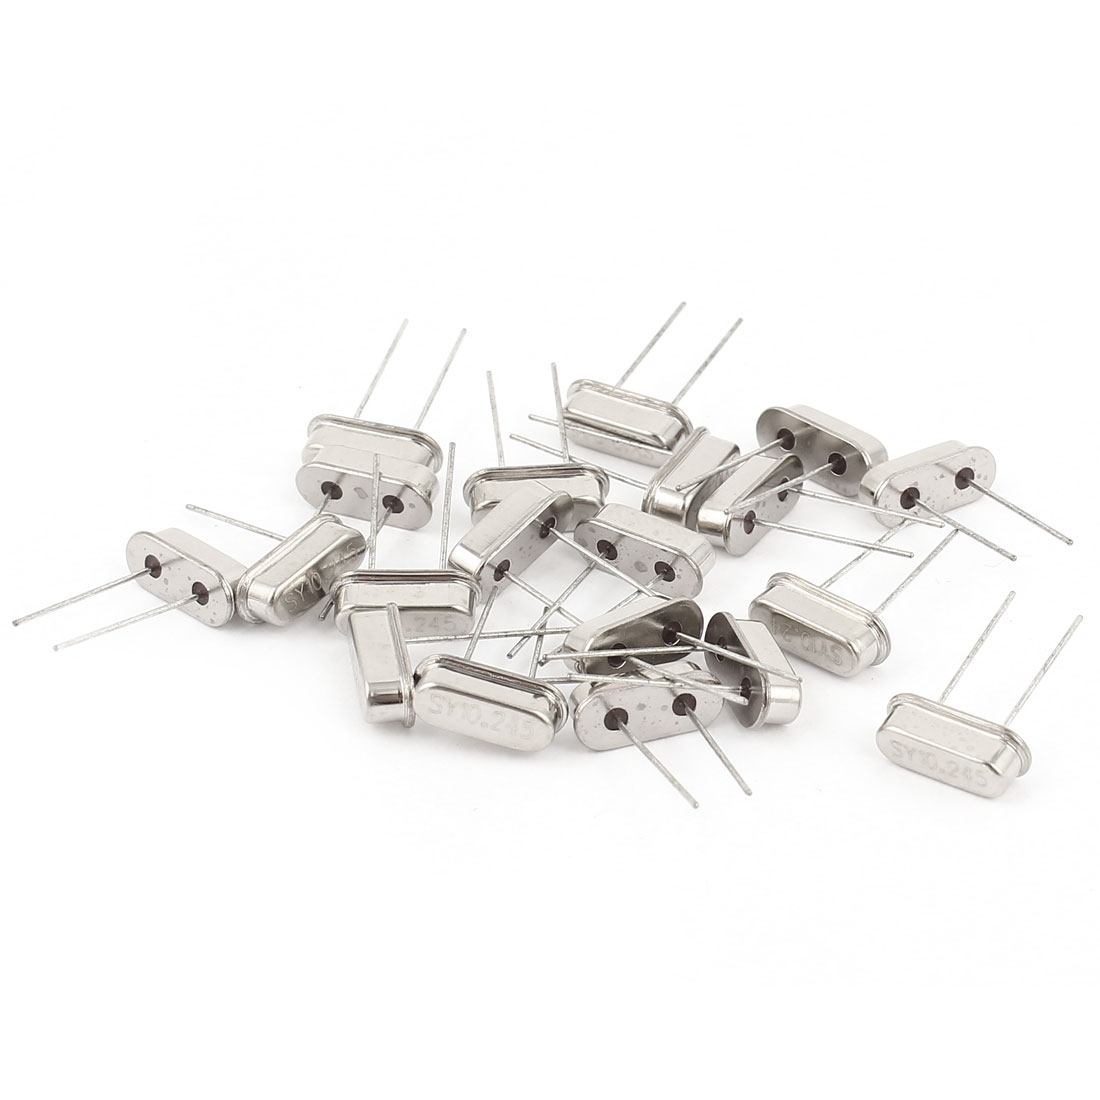 20 Pieces Silver Tone 10.245MHZ DIP Mount Crystal Oscillator HC-49S Replacements